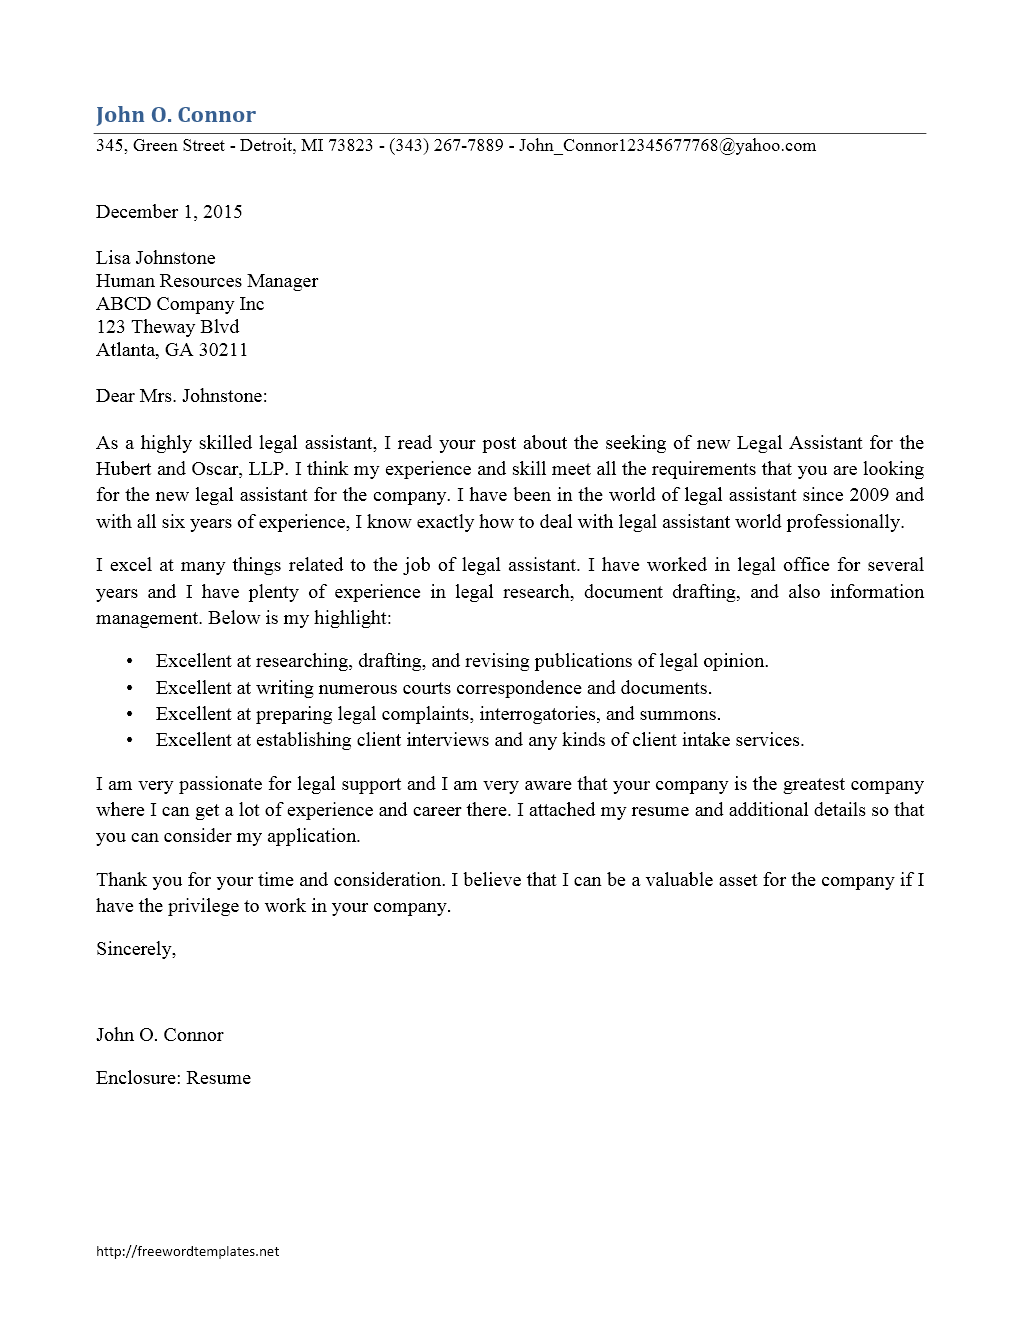 legal assistant cover letter wordtemplates net cover letter template legal assistant